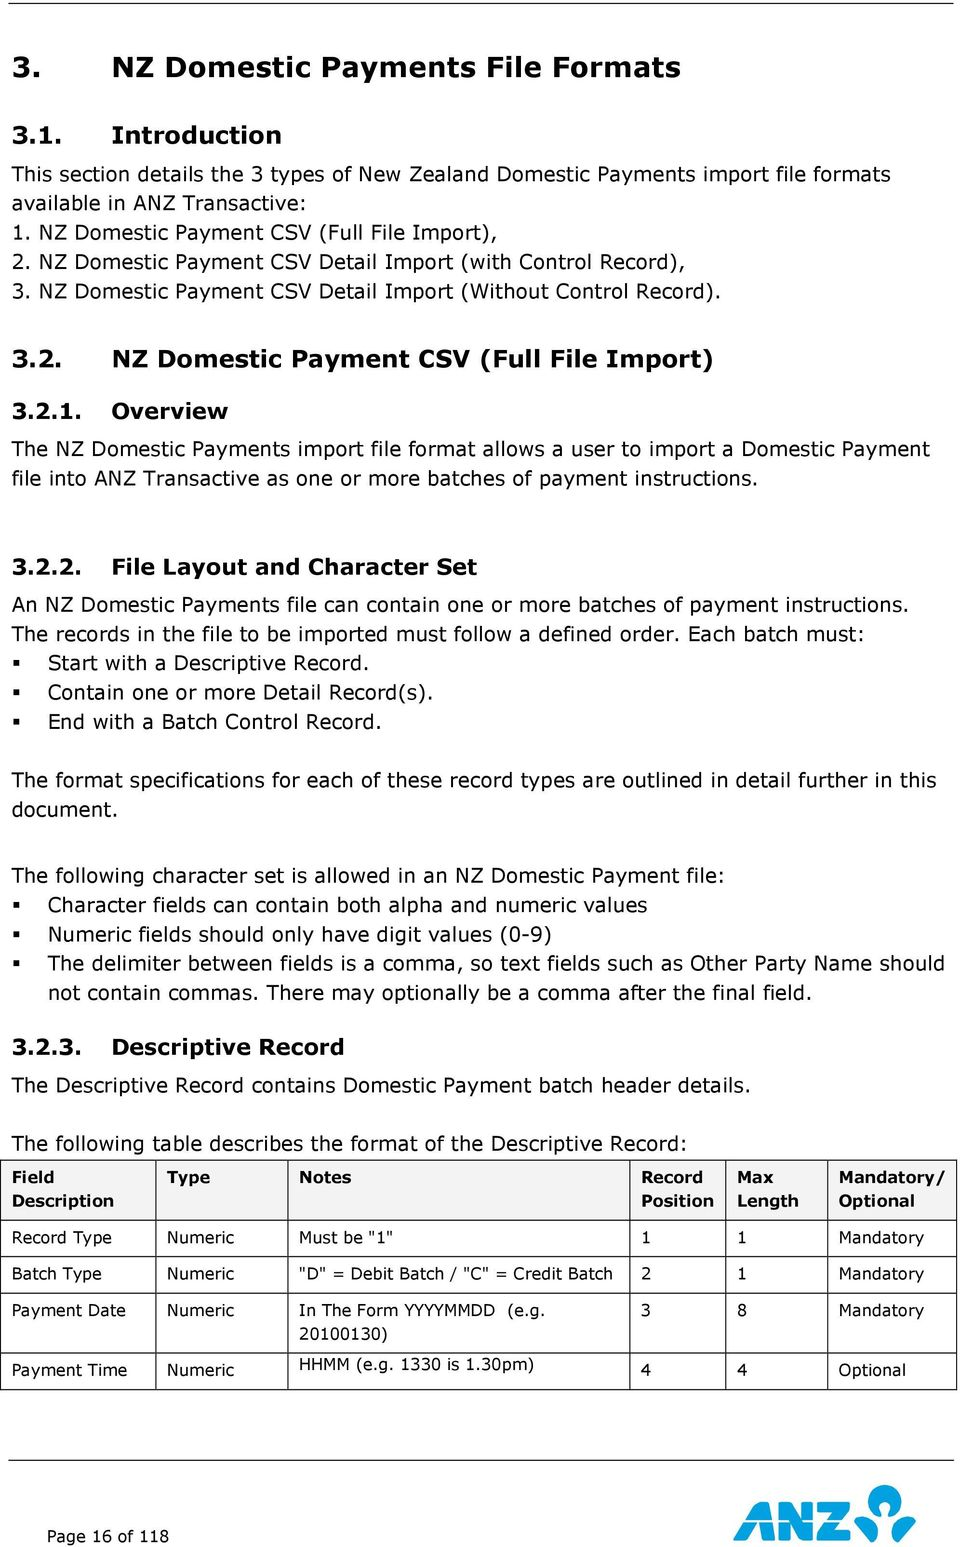 2.1. Overview The NZ Domestic Payments import file format allows a user to import a Domestic Payment file into ANZ Transactive as one or more batches of payment instructions. 3.2.2. File Layout and Character Set An NZ Domestic Payments file can contain one or more batches of payment instructions.